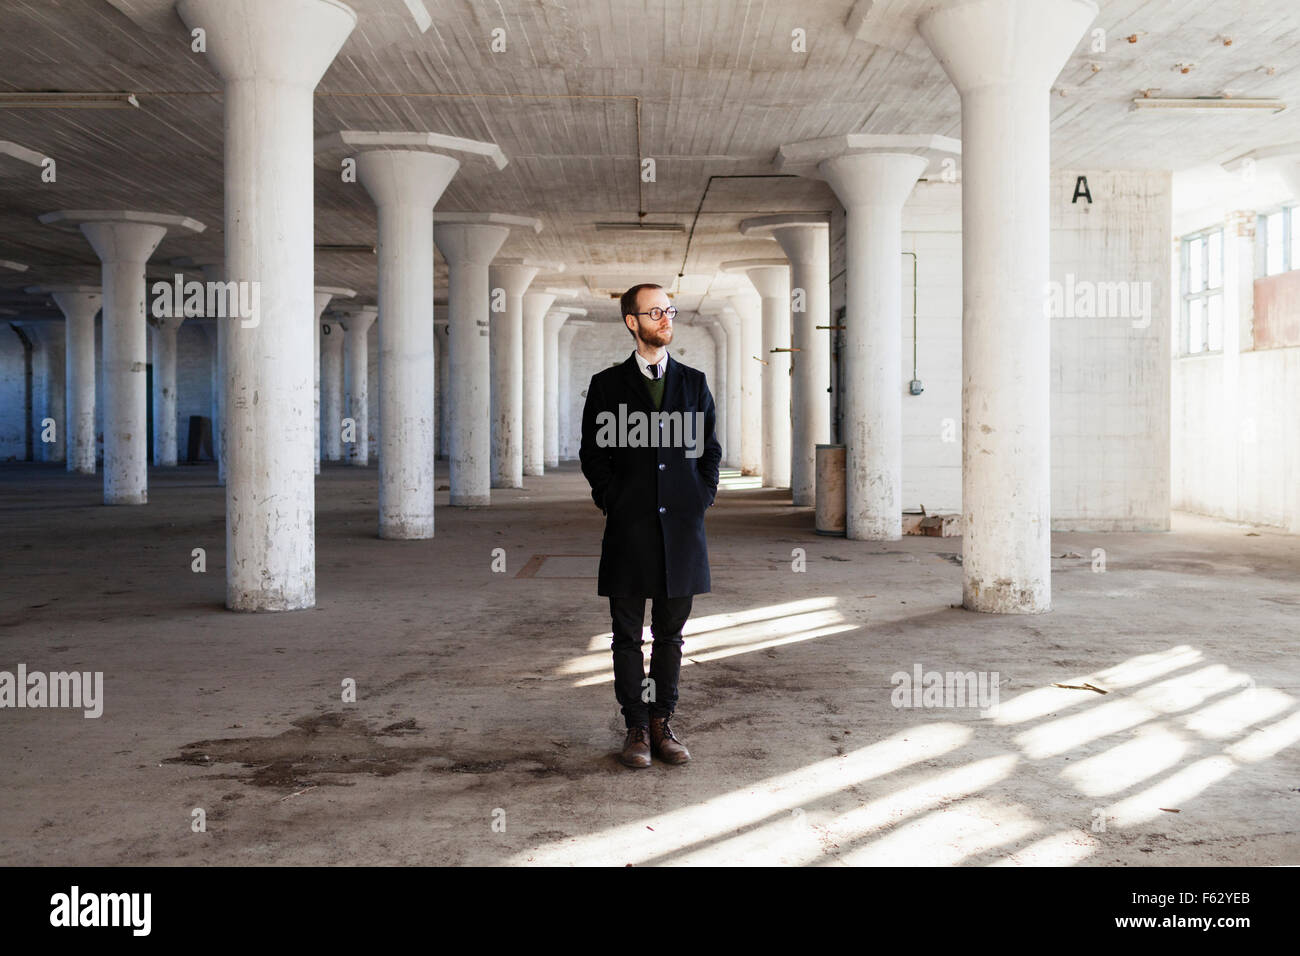 Lonely Businessman In Abandoned Building Stock Photo Alamy